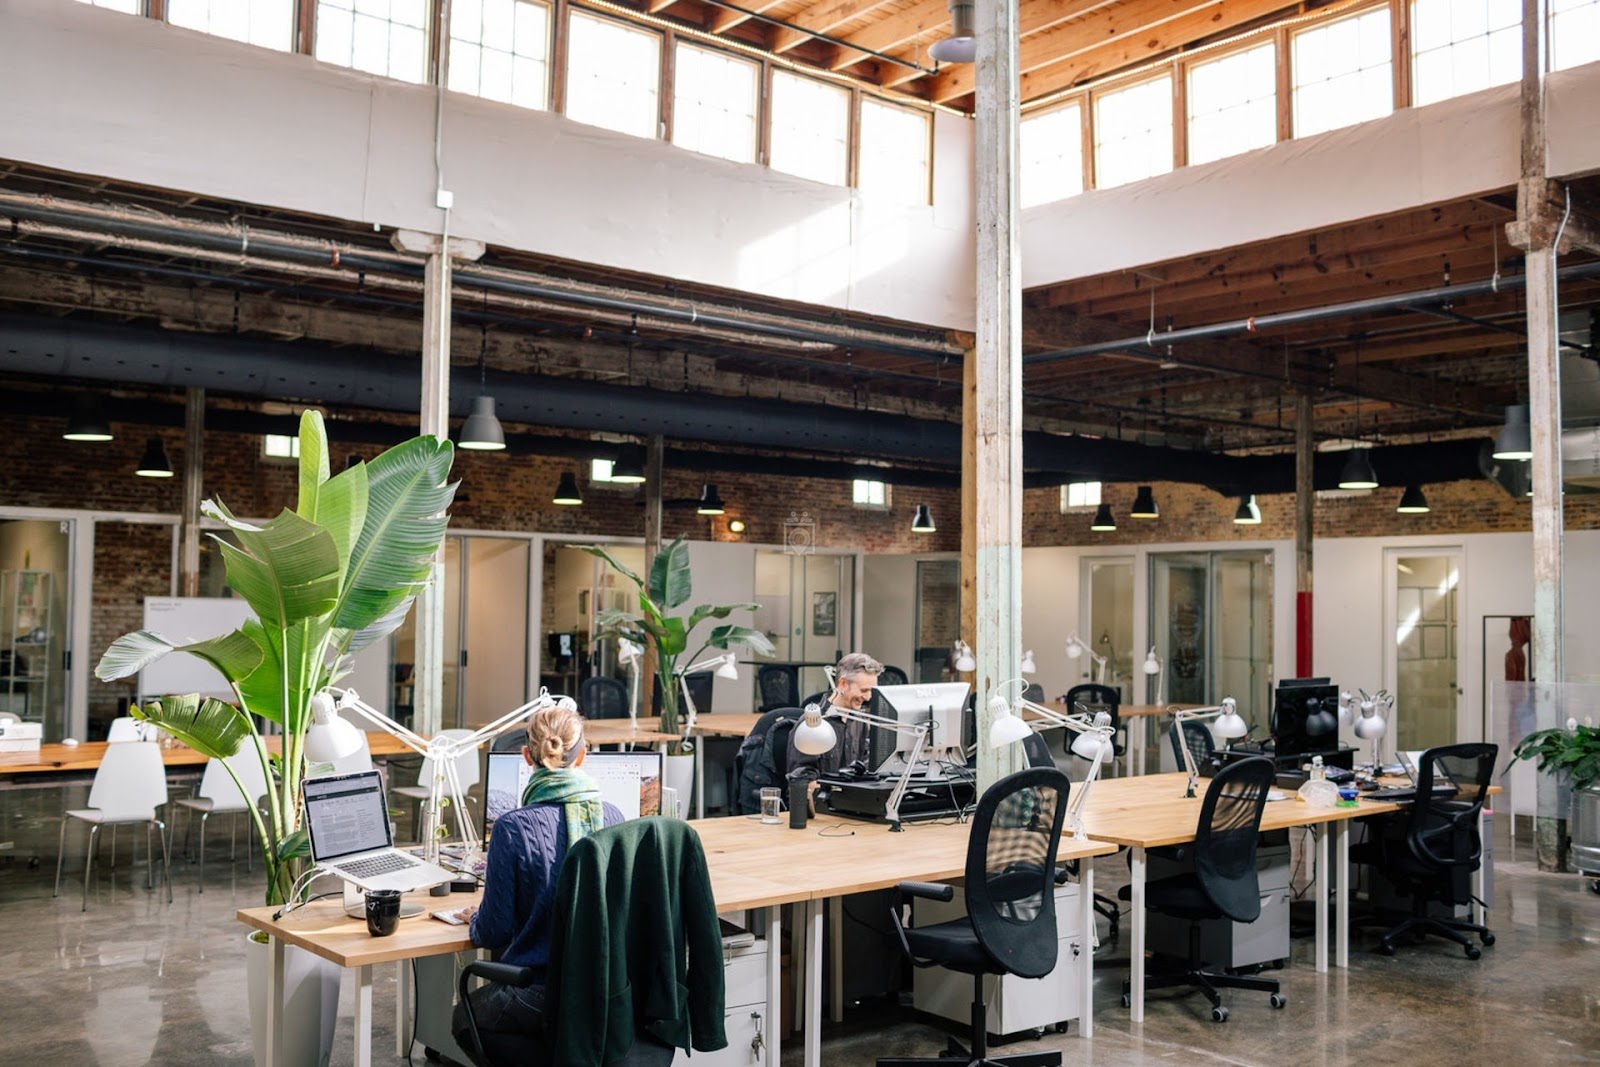 10 Best Coworking Space in New Orleans [2020 List] 16